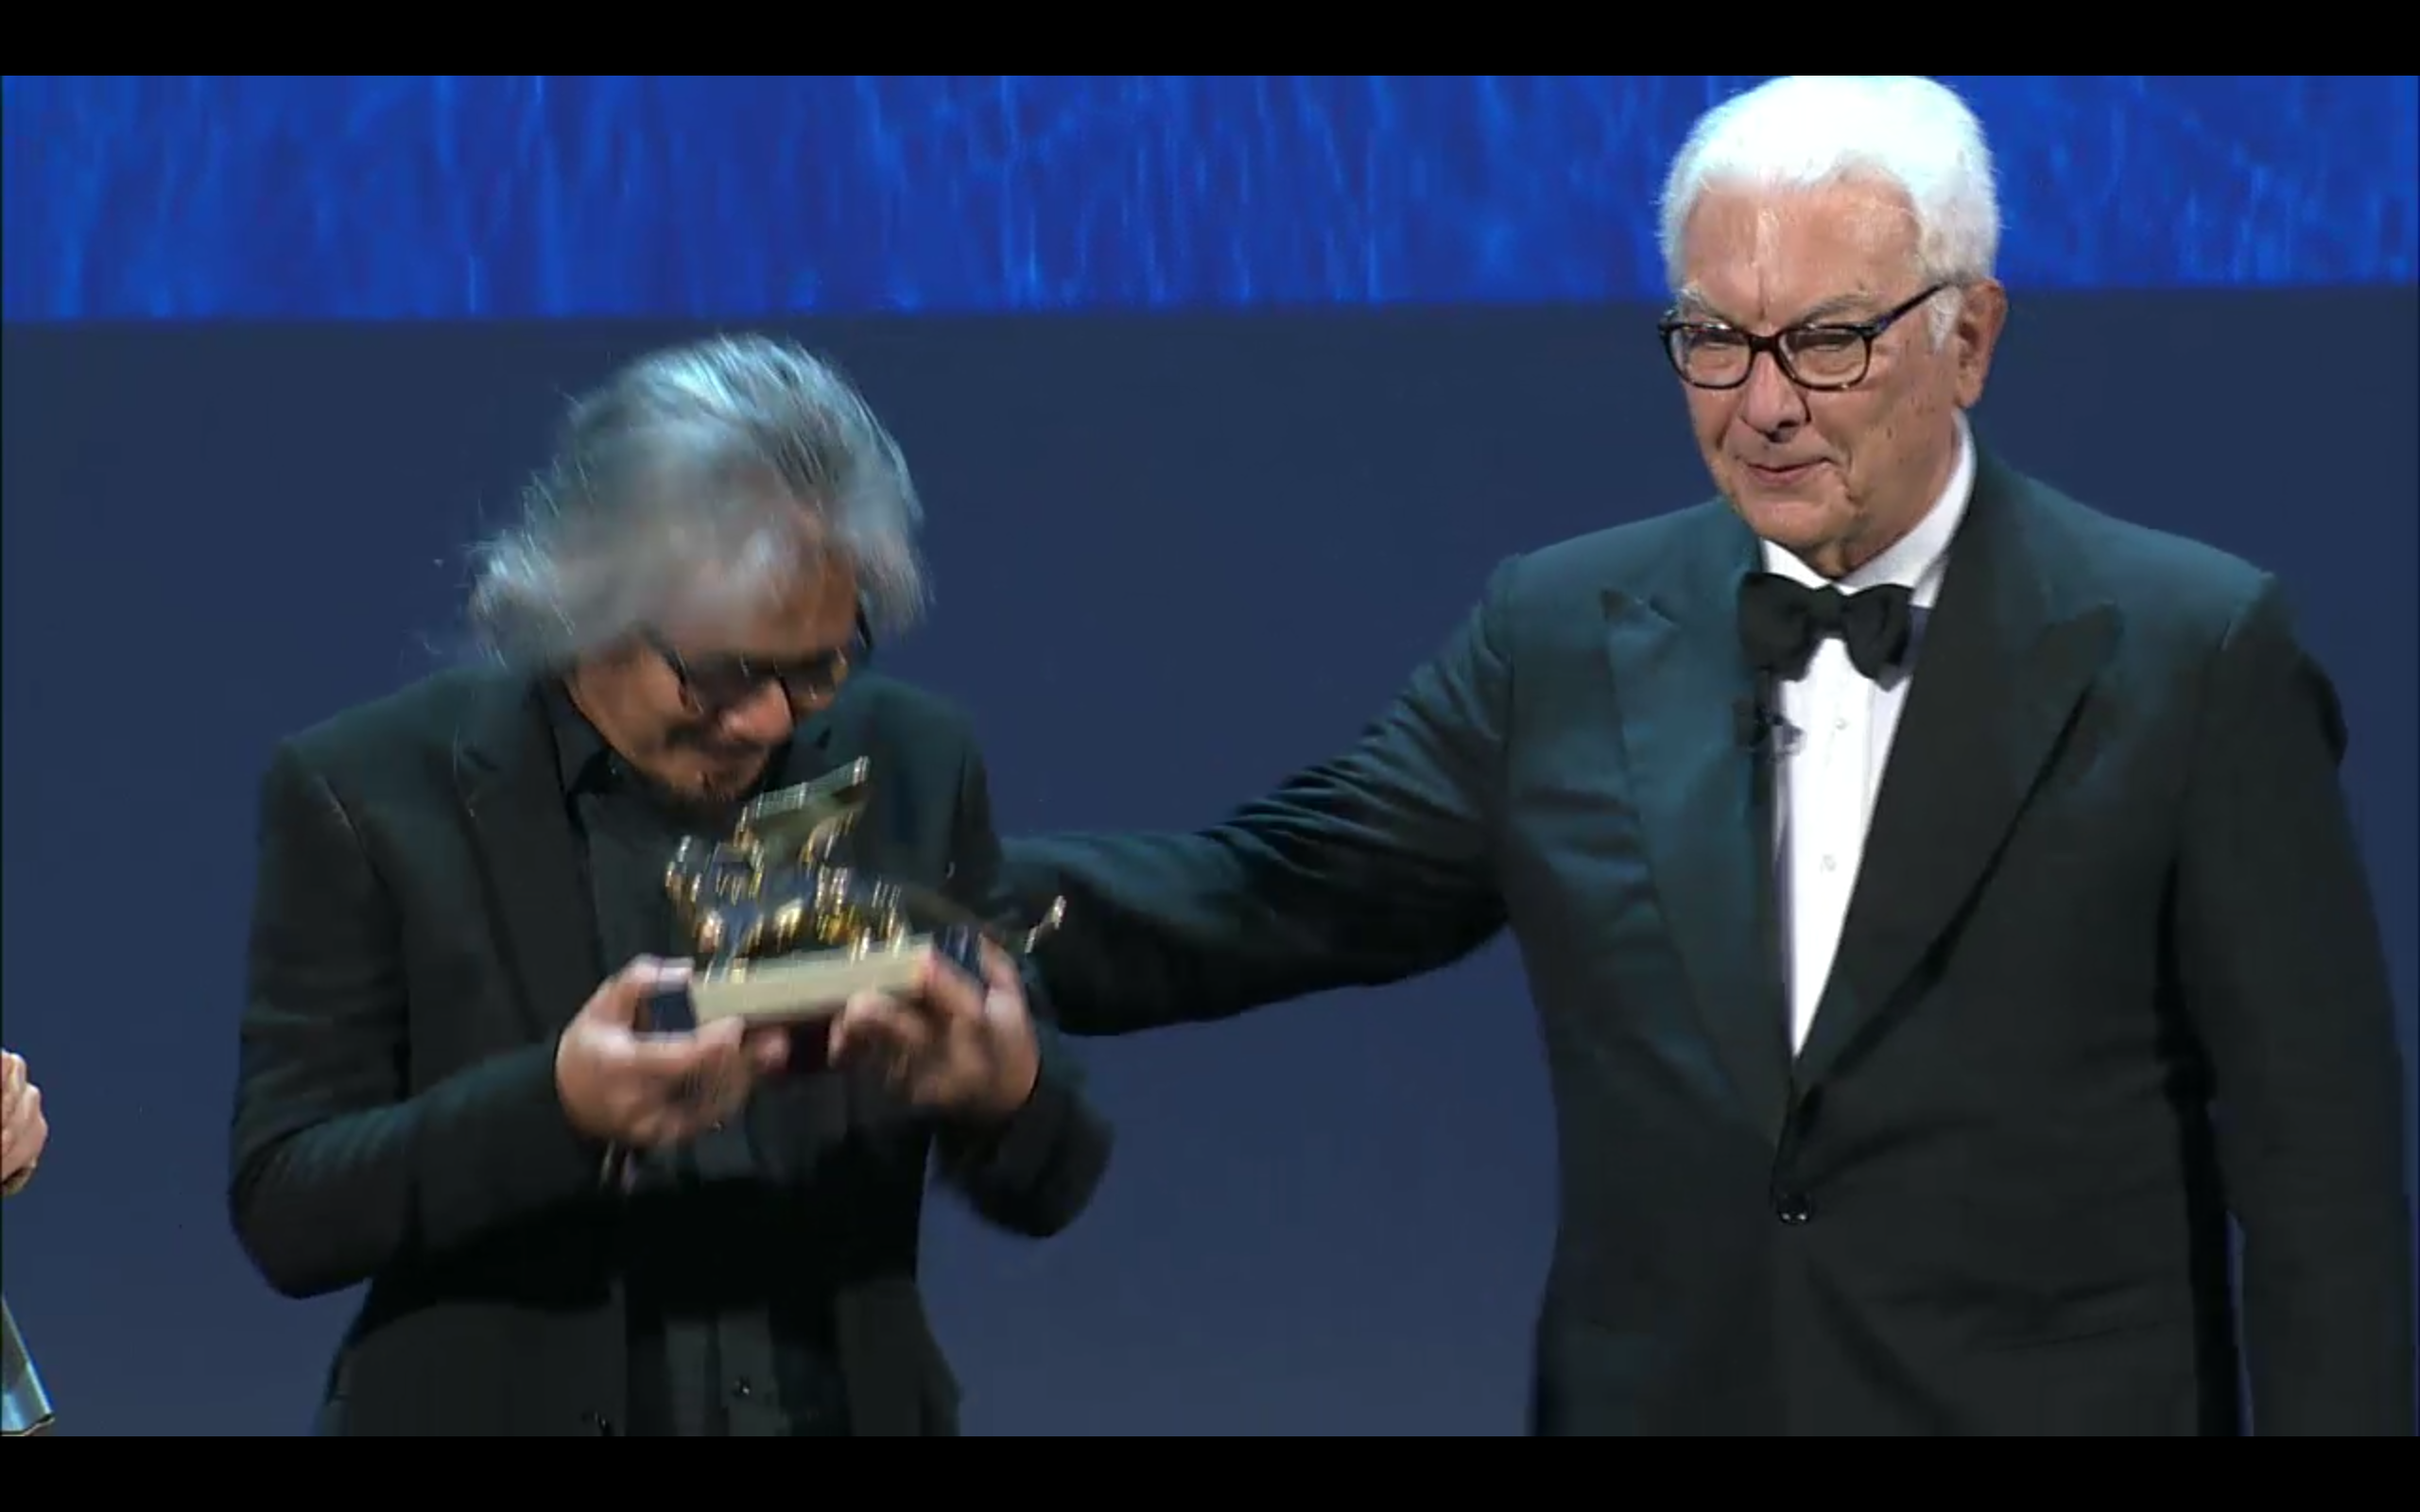 GOLDEN LION for Best Film to ANG BABAENG HUMAYO (THE WOMAN WHO LEFT) by LAV DIAZ (Philippines)